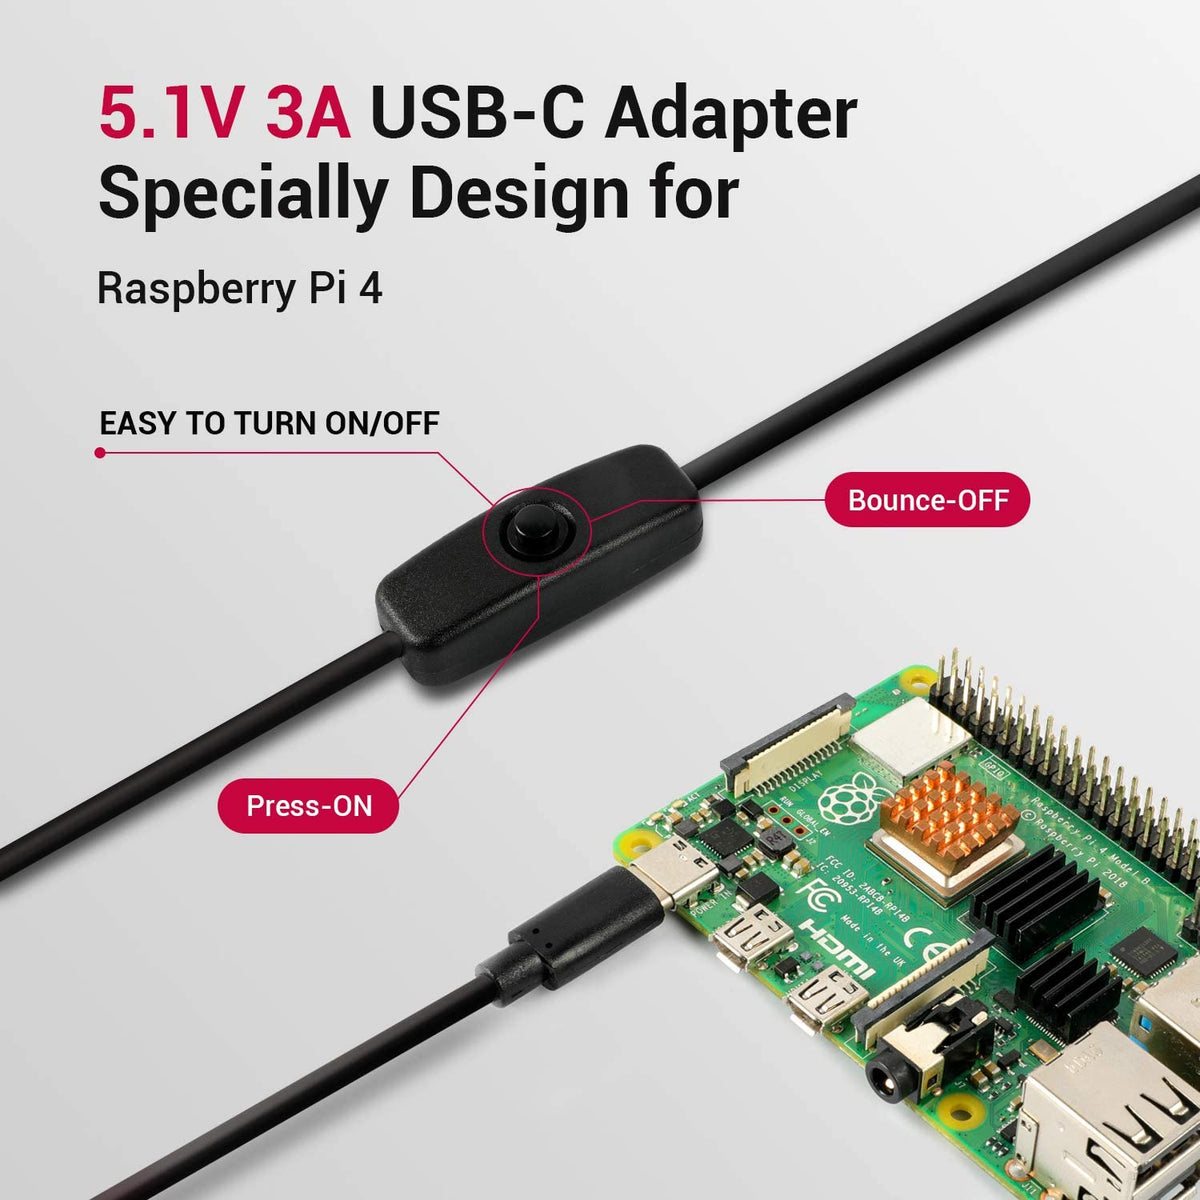 5.1V 3A USB-C Adapter